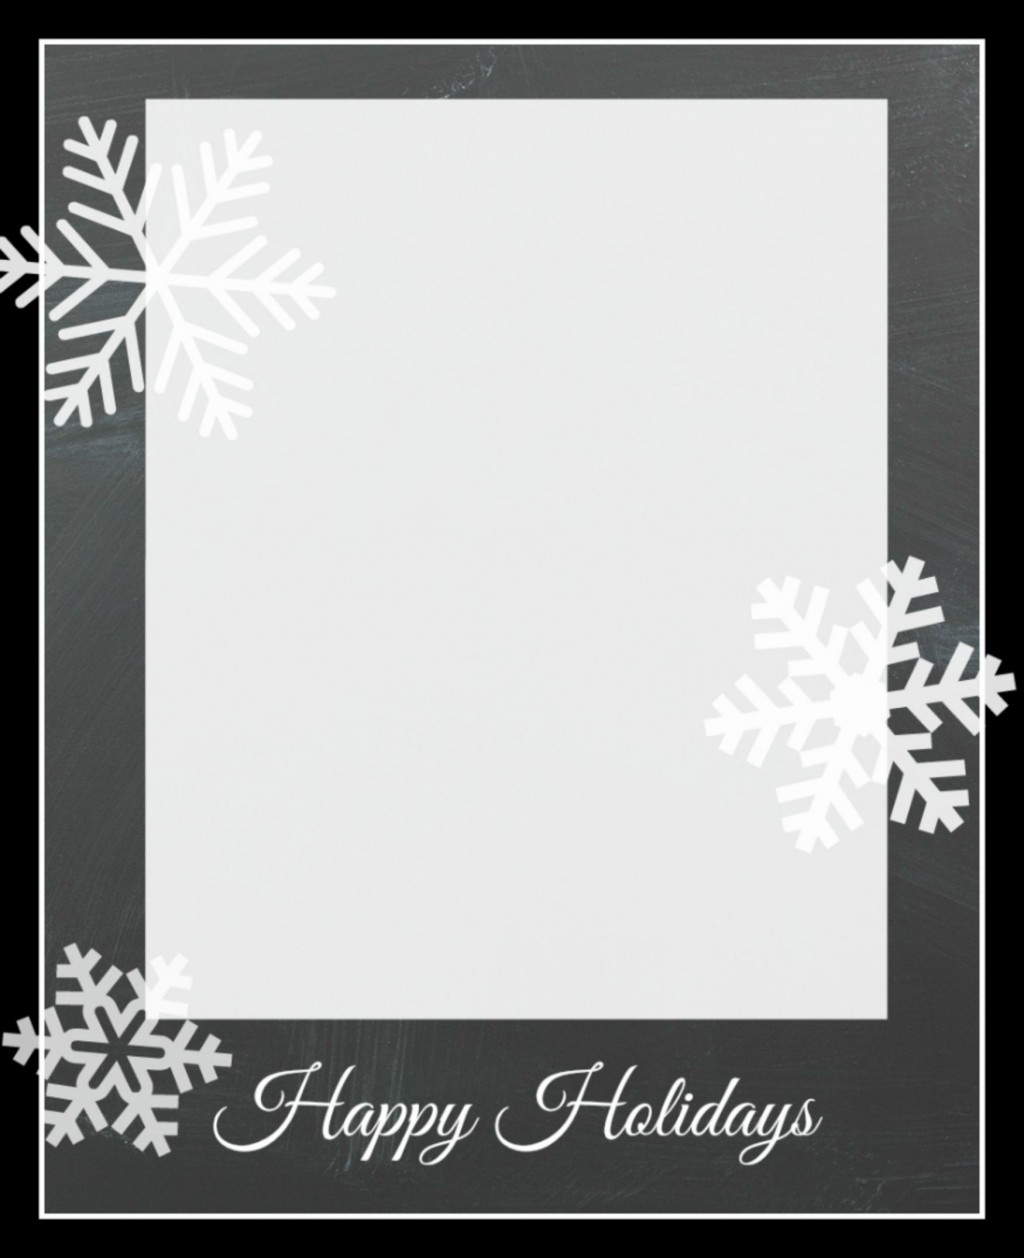 010 Remarkable Free Photo Card Template Idea  Printable Holiday Christma DownloadLarge